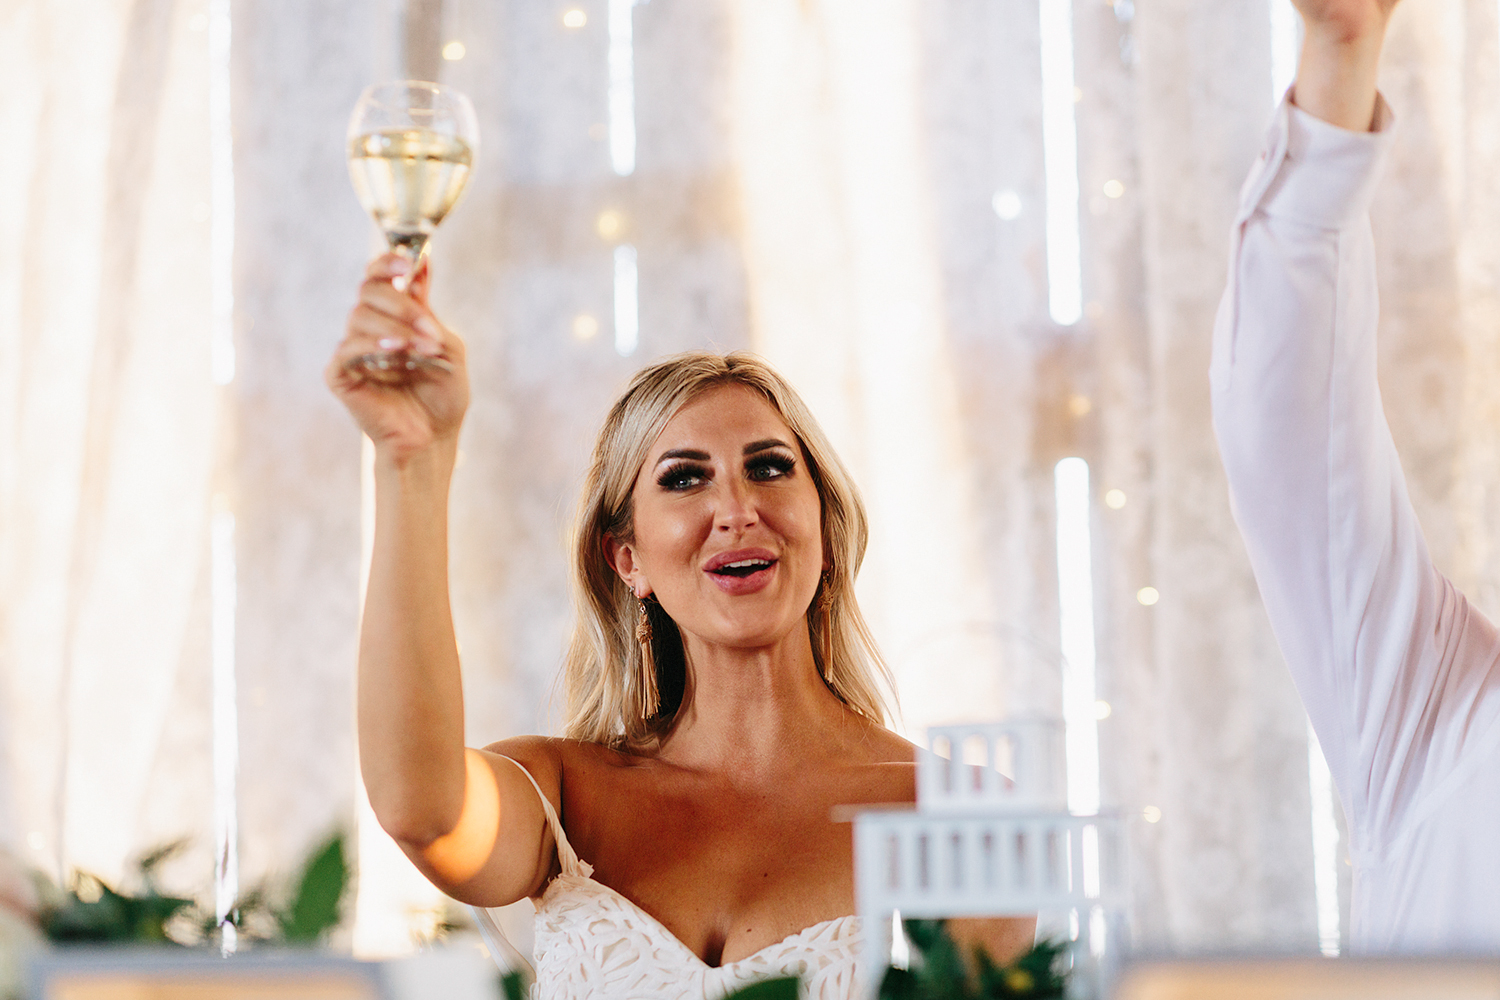 Documentary-Wedding-Photographers-in-Toronto-Candid-Natural-Dowswell-Barn-Wedding-Rustic-GTA-Muskoka-Farm-romantic-barn-golden-light-speeches-bridesmaid-moh-cute-bride-cheers-toast.jpg